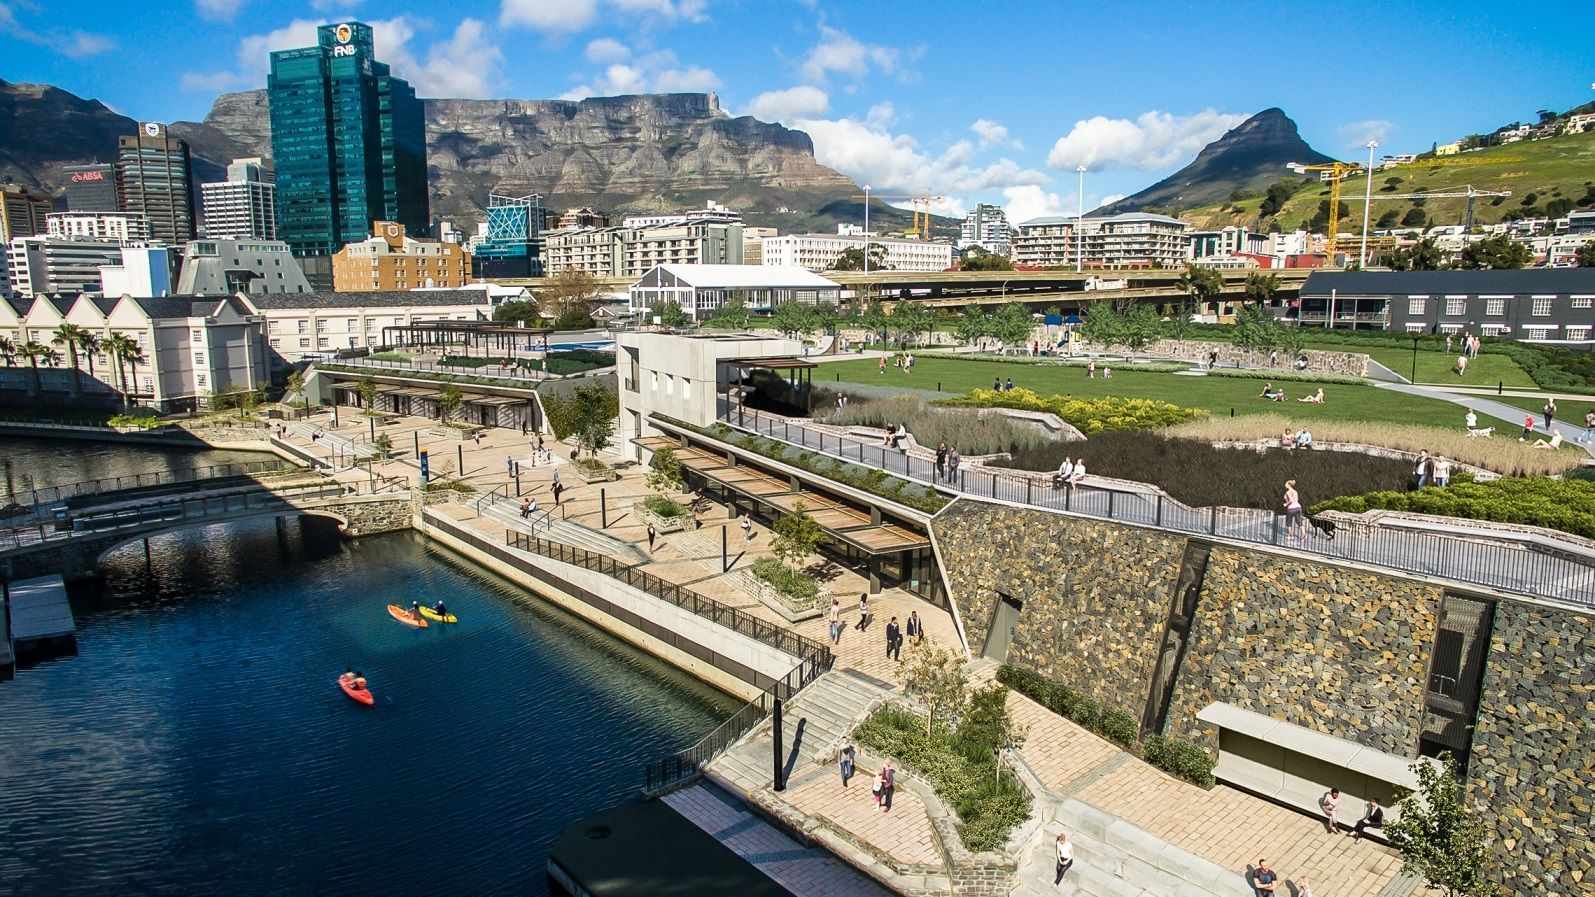 V&a Waterfront To Open Giant, New Urban Park photo